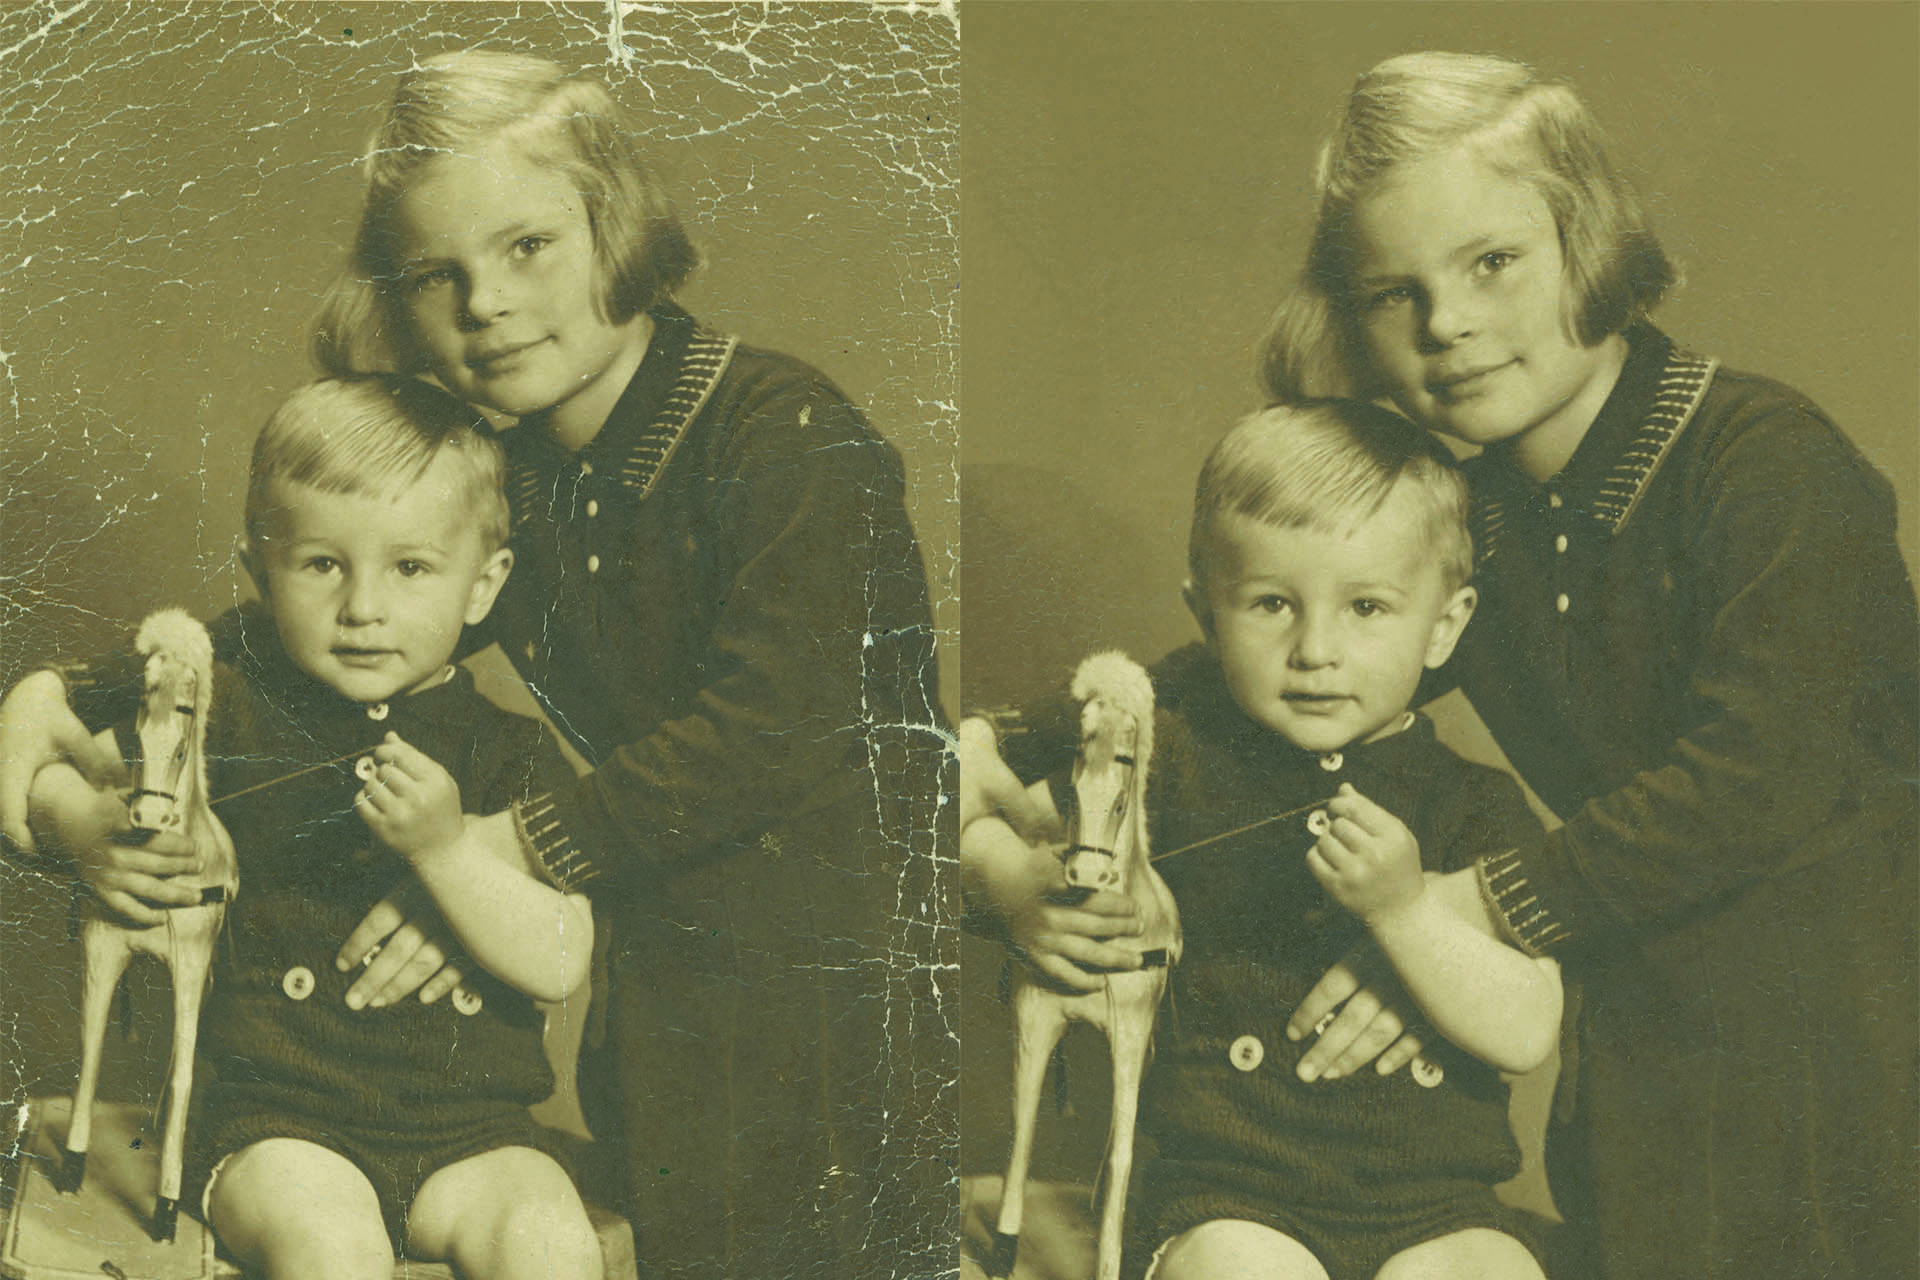 Photo restoration at Plasma Music